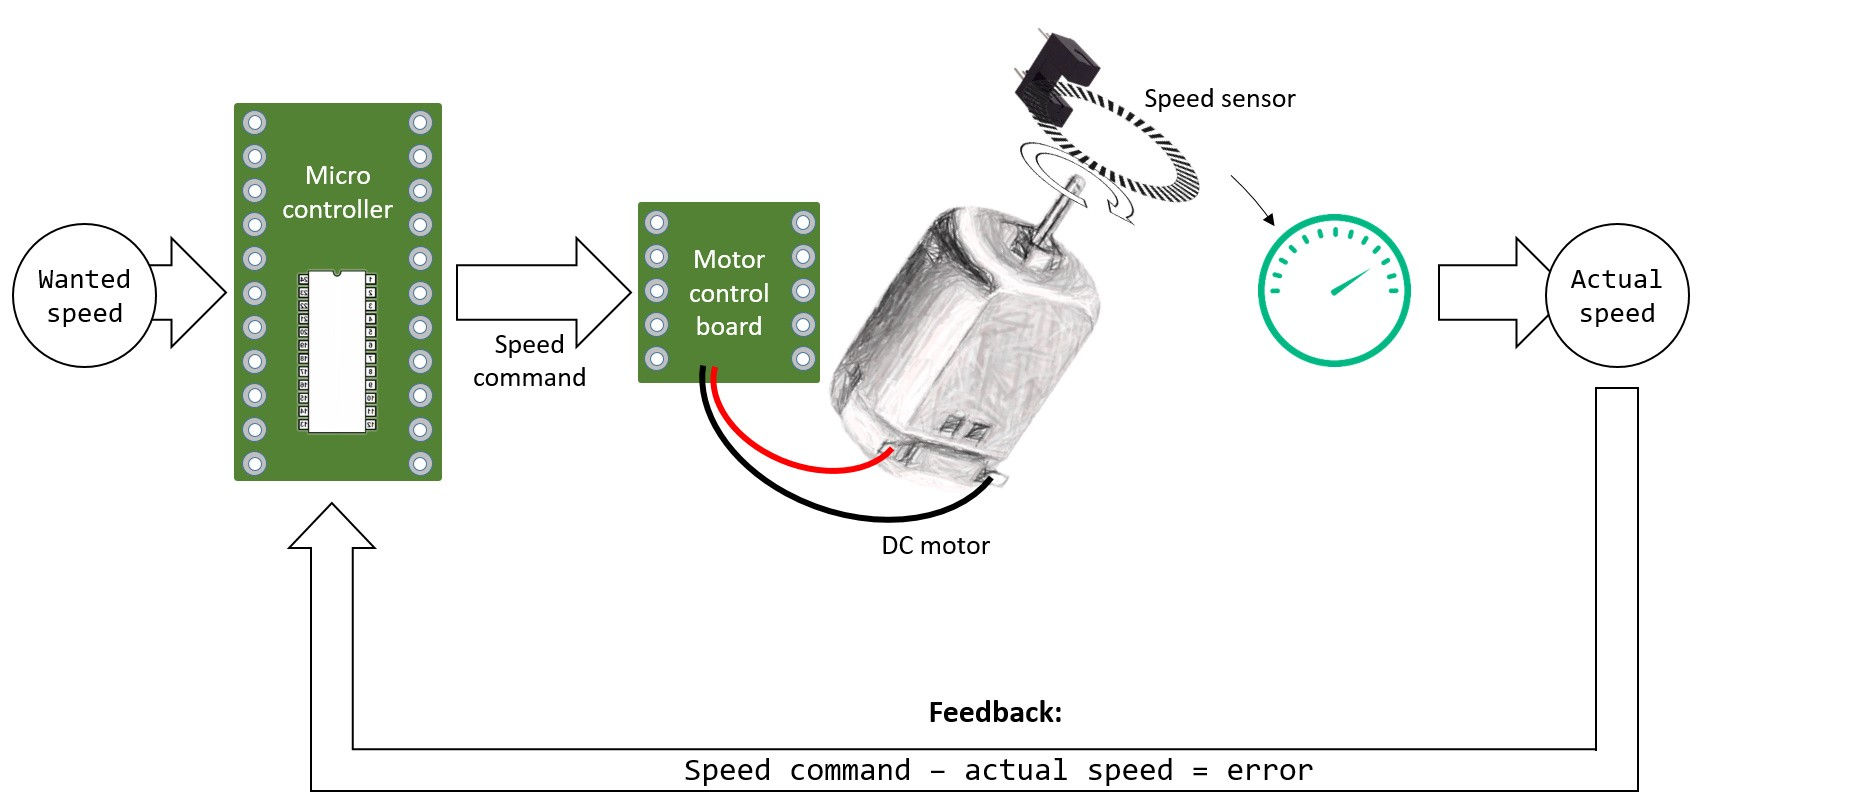 An Introduction To Pid Control With Dc Motor Luosrobotics Medium Small Speed Regulator Example Of A Loop Feedback System For The Pencil Drawn